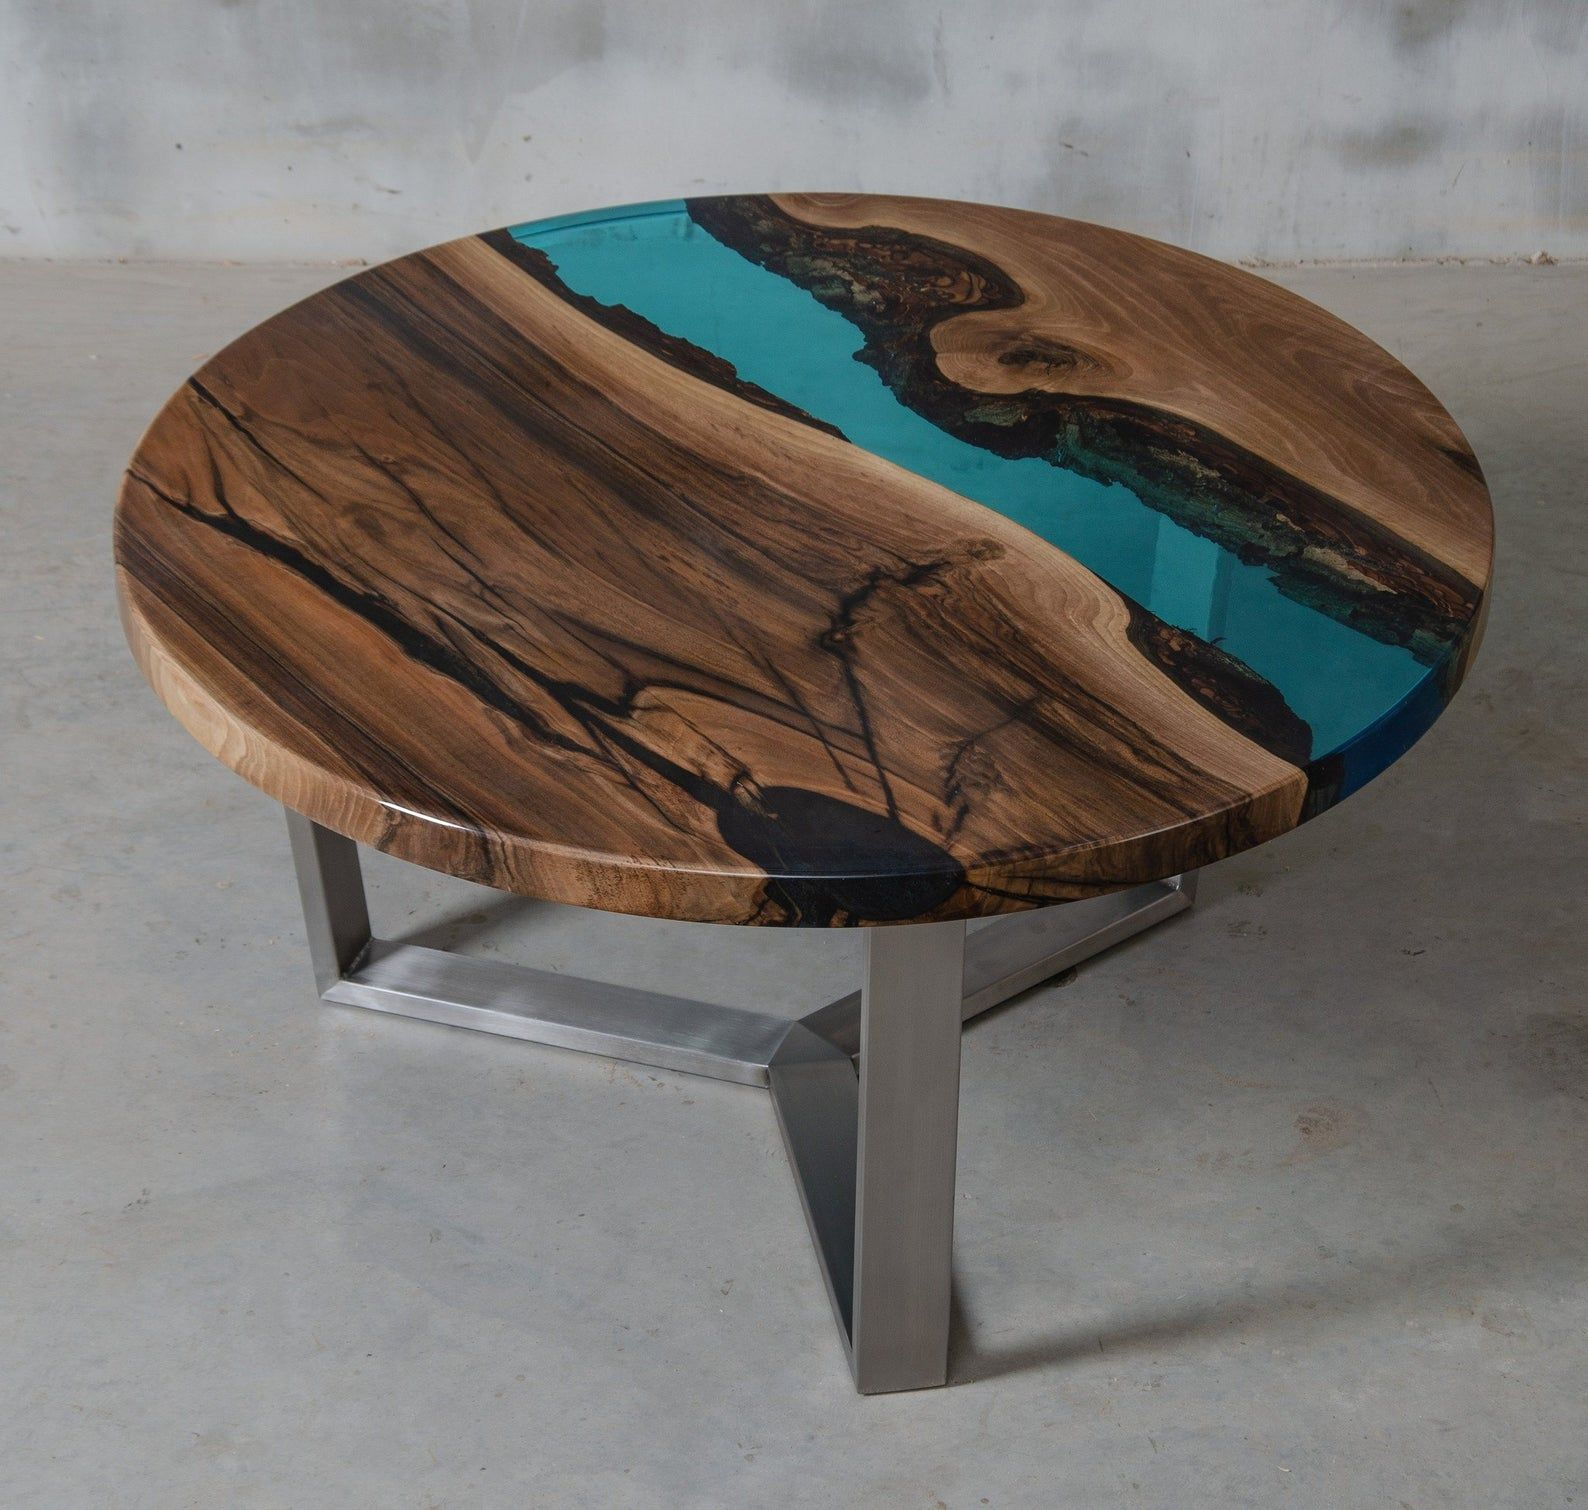 Eden Double Round Coffee Table Italian Walnut Wood And Clear Epoxy Resin On A Chromed Metal Base By Ghecipol Nachbearbeitete Mobel Holz Ideen Mobel [ 1045 x 1071 Pixel ]